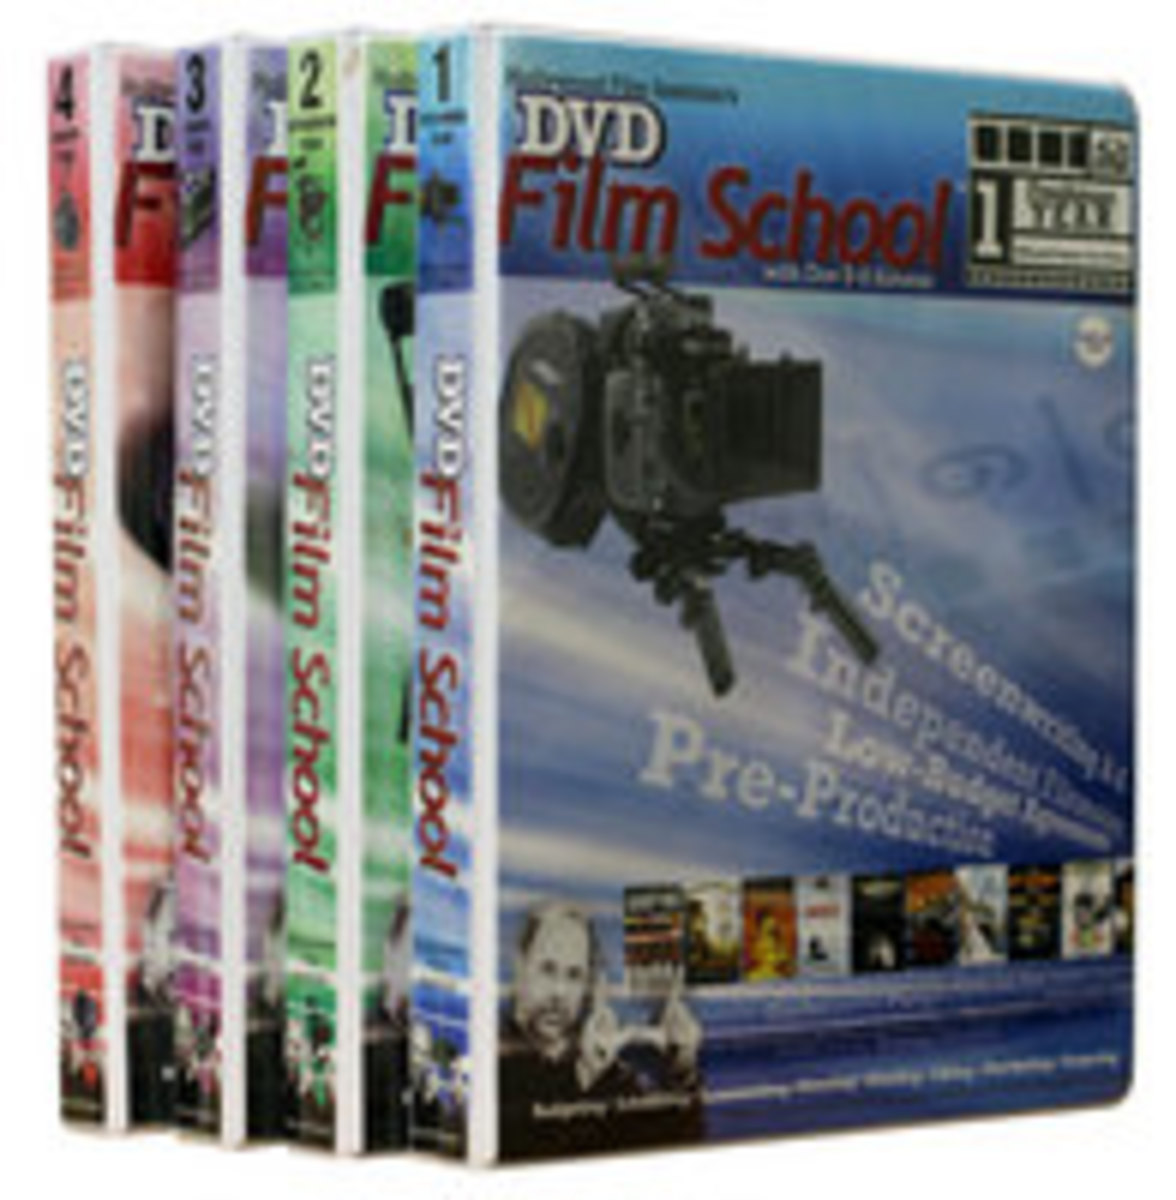 dov-simens-film-school-dvd-set_small